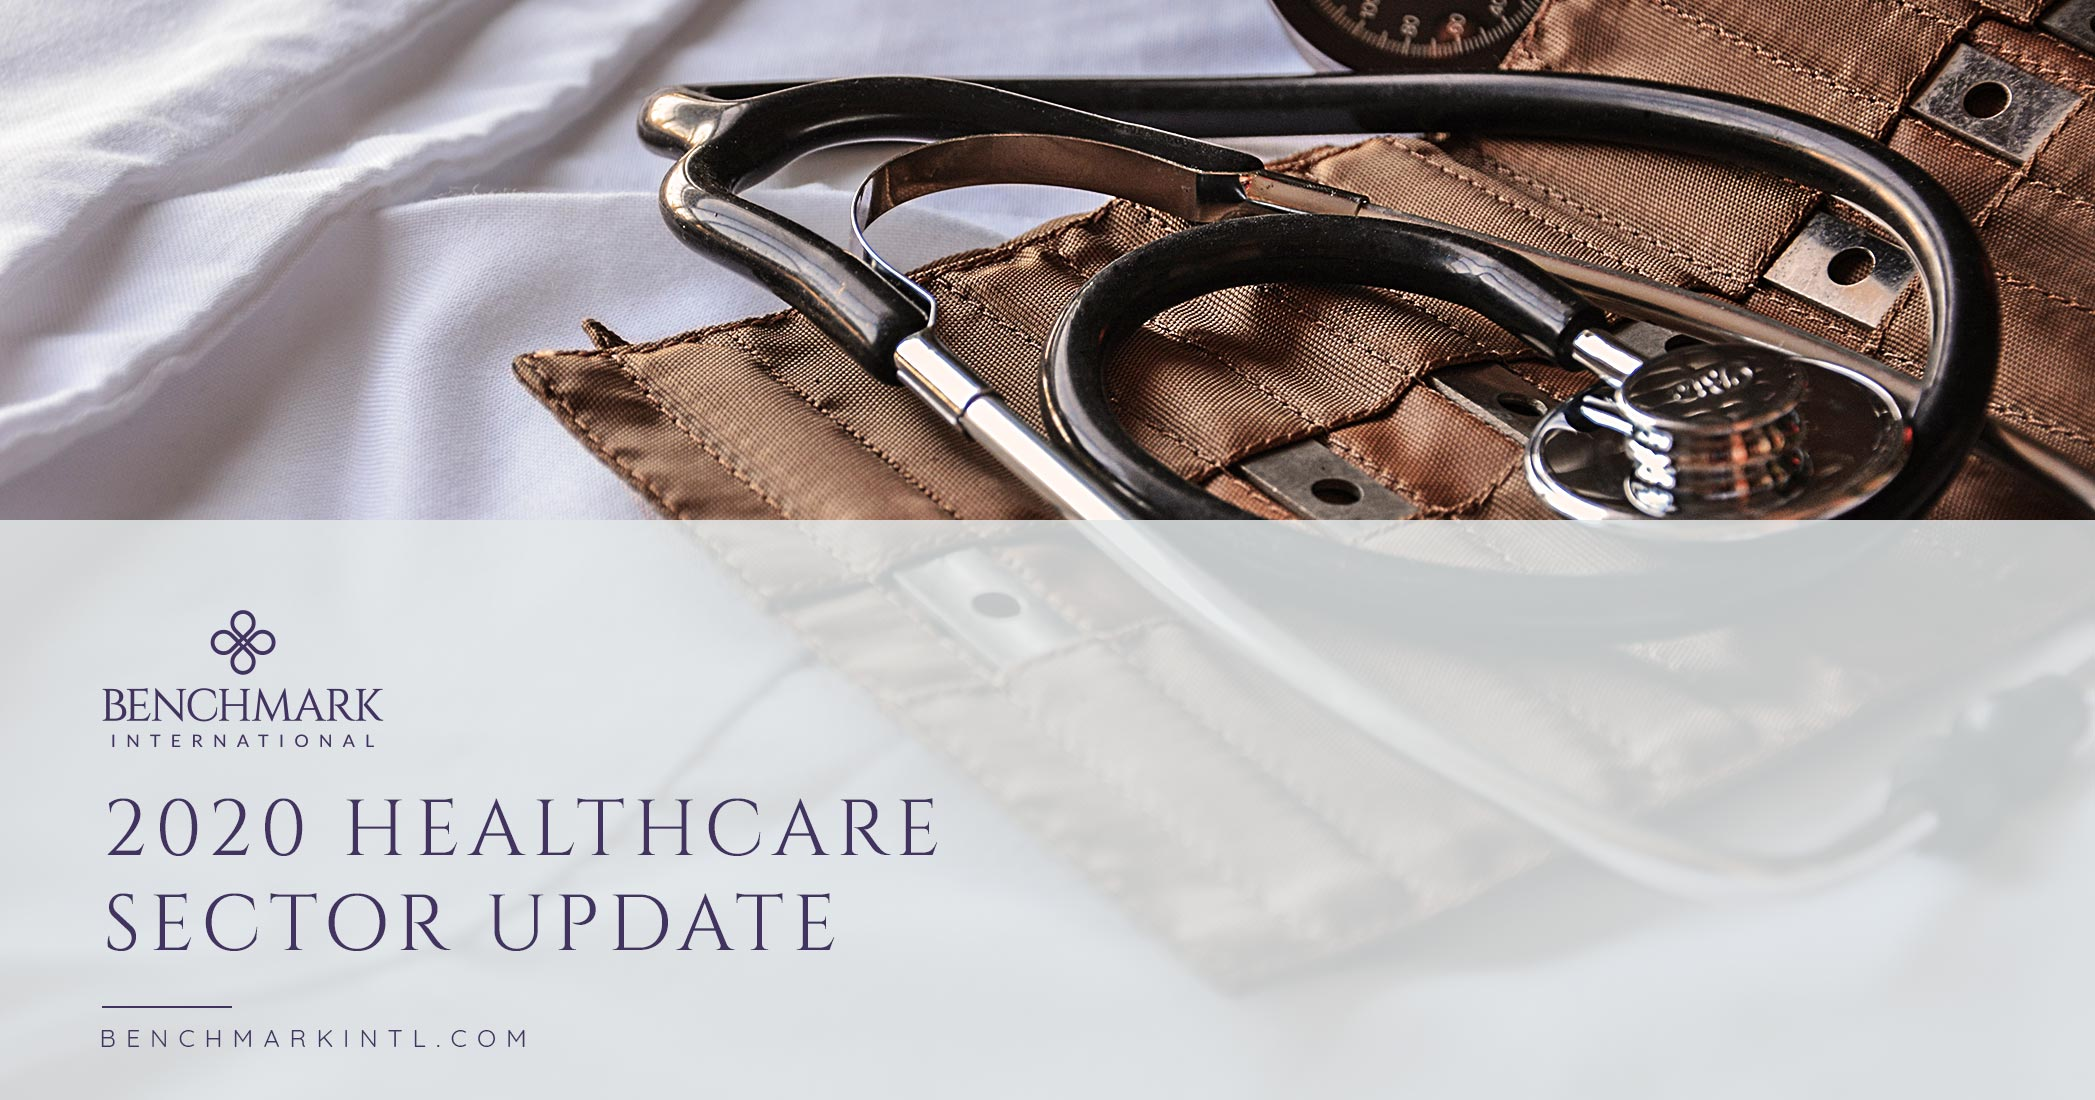 2020 Healthcare Sector Update